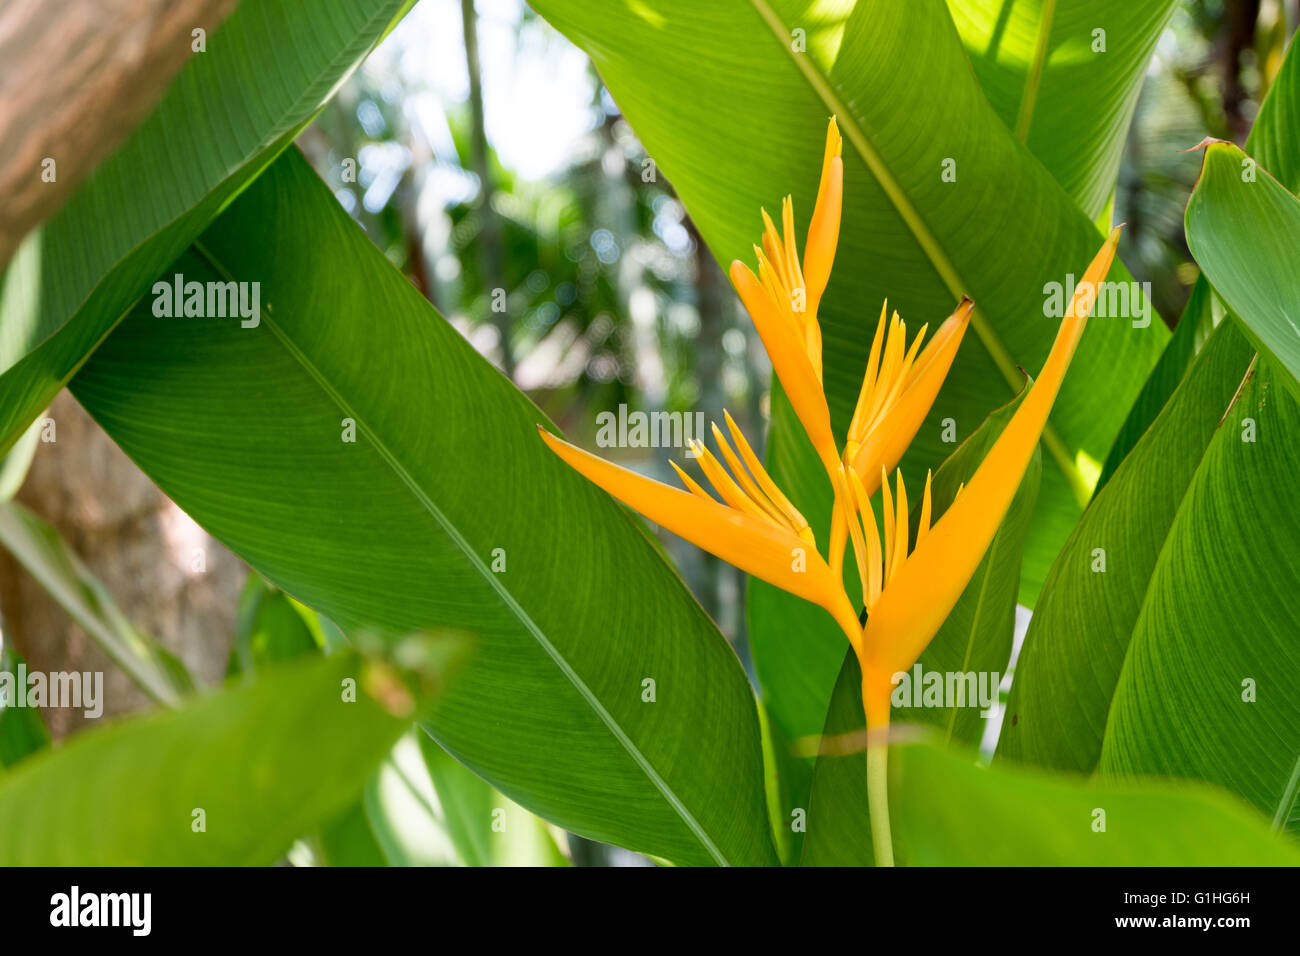 Beautiful yellow Heliconia flower tree in the Tropical Botanical Garden. - Stock Image